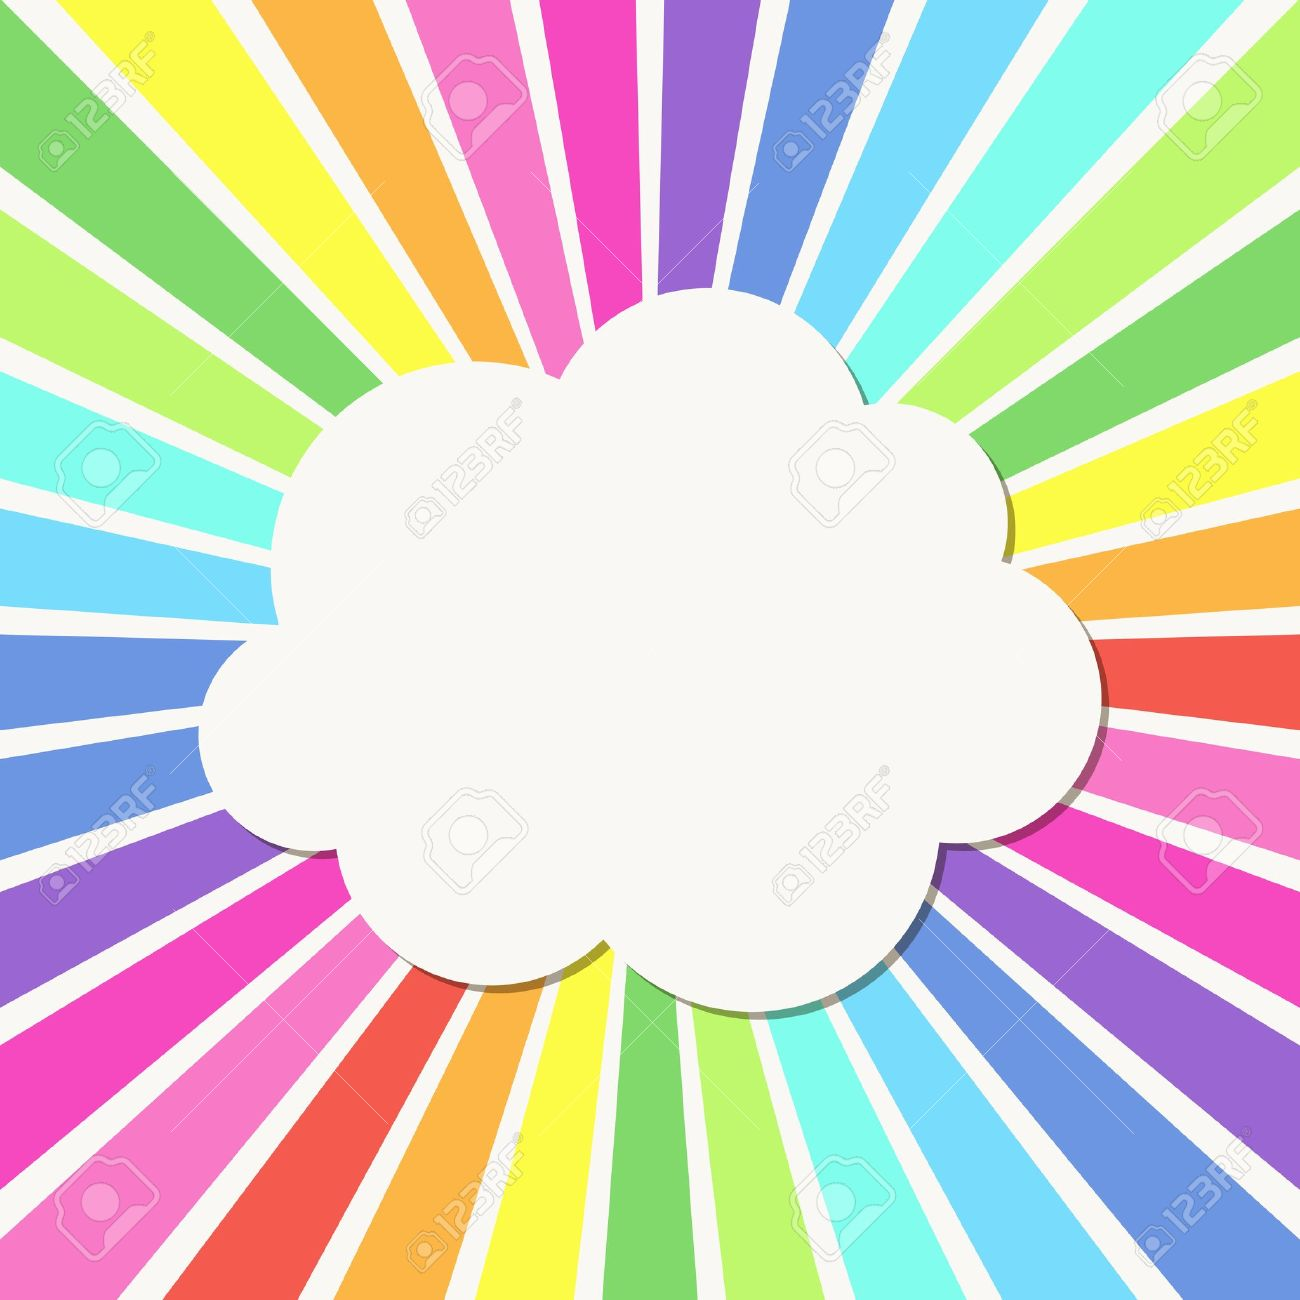 abstract background with rays and cloud frame stock vector 17529115